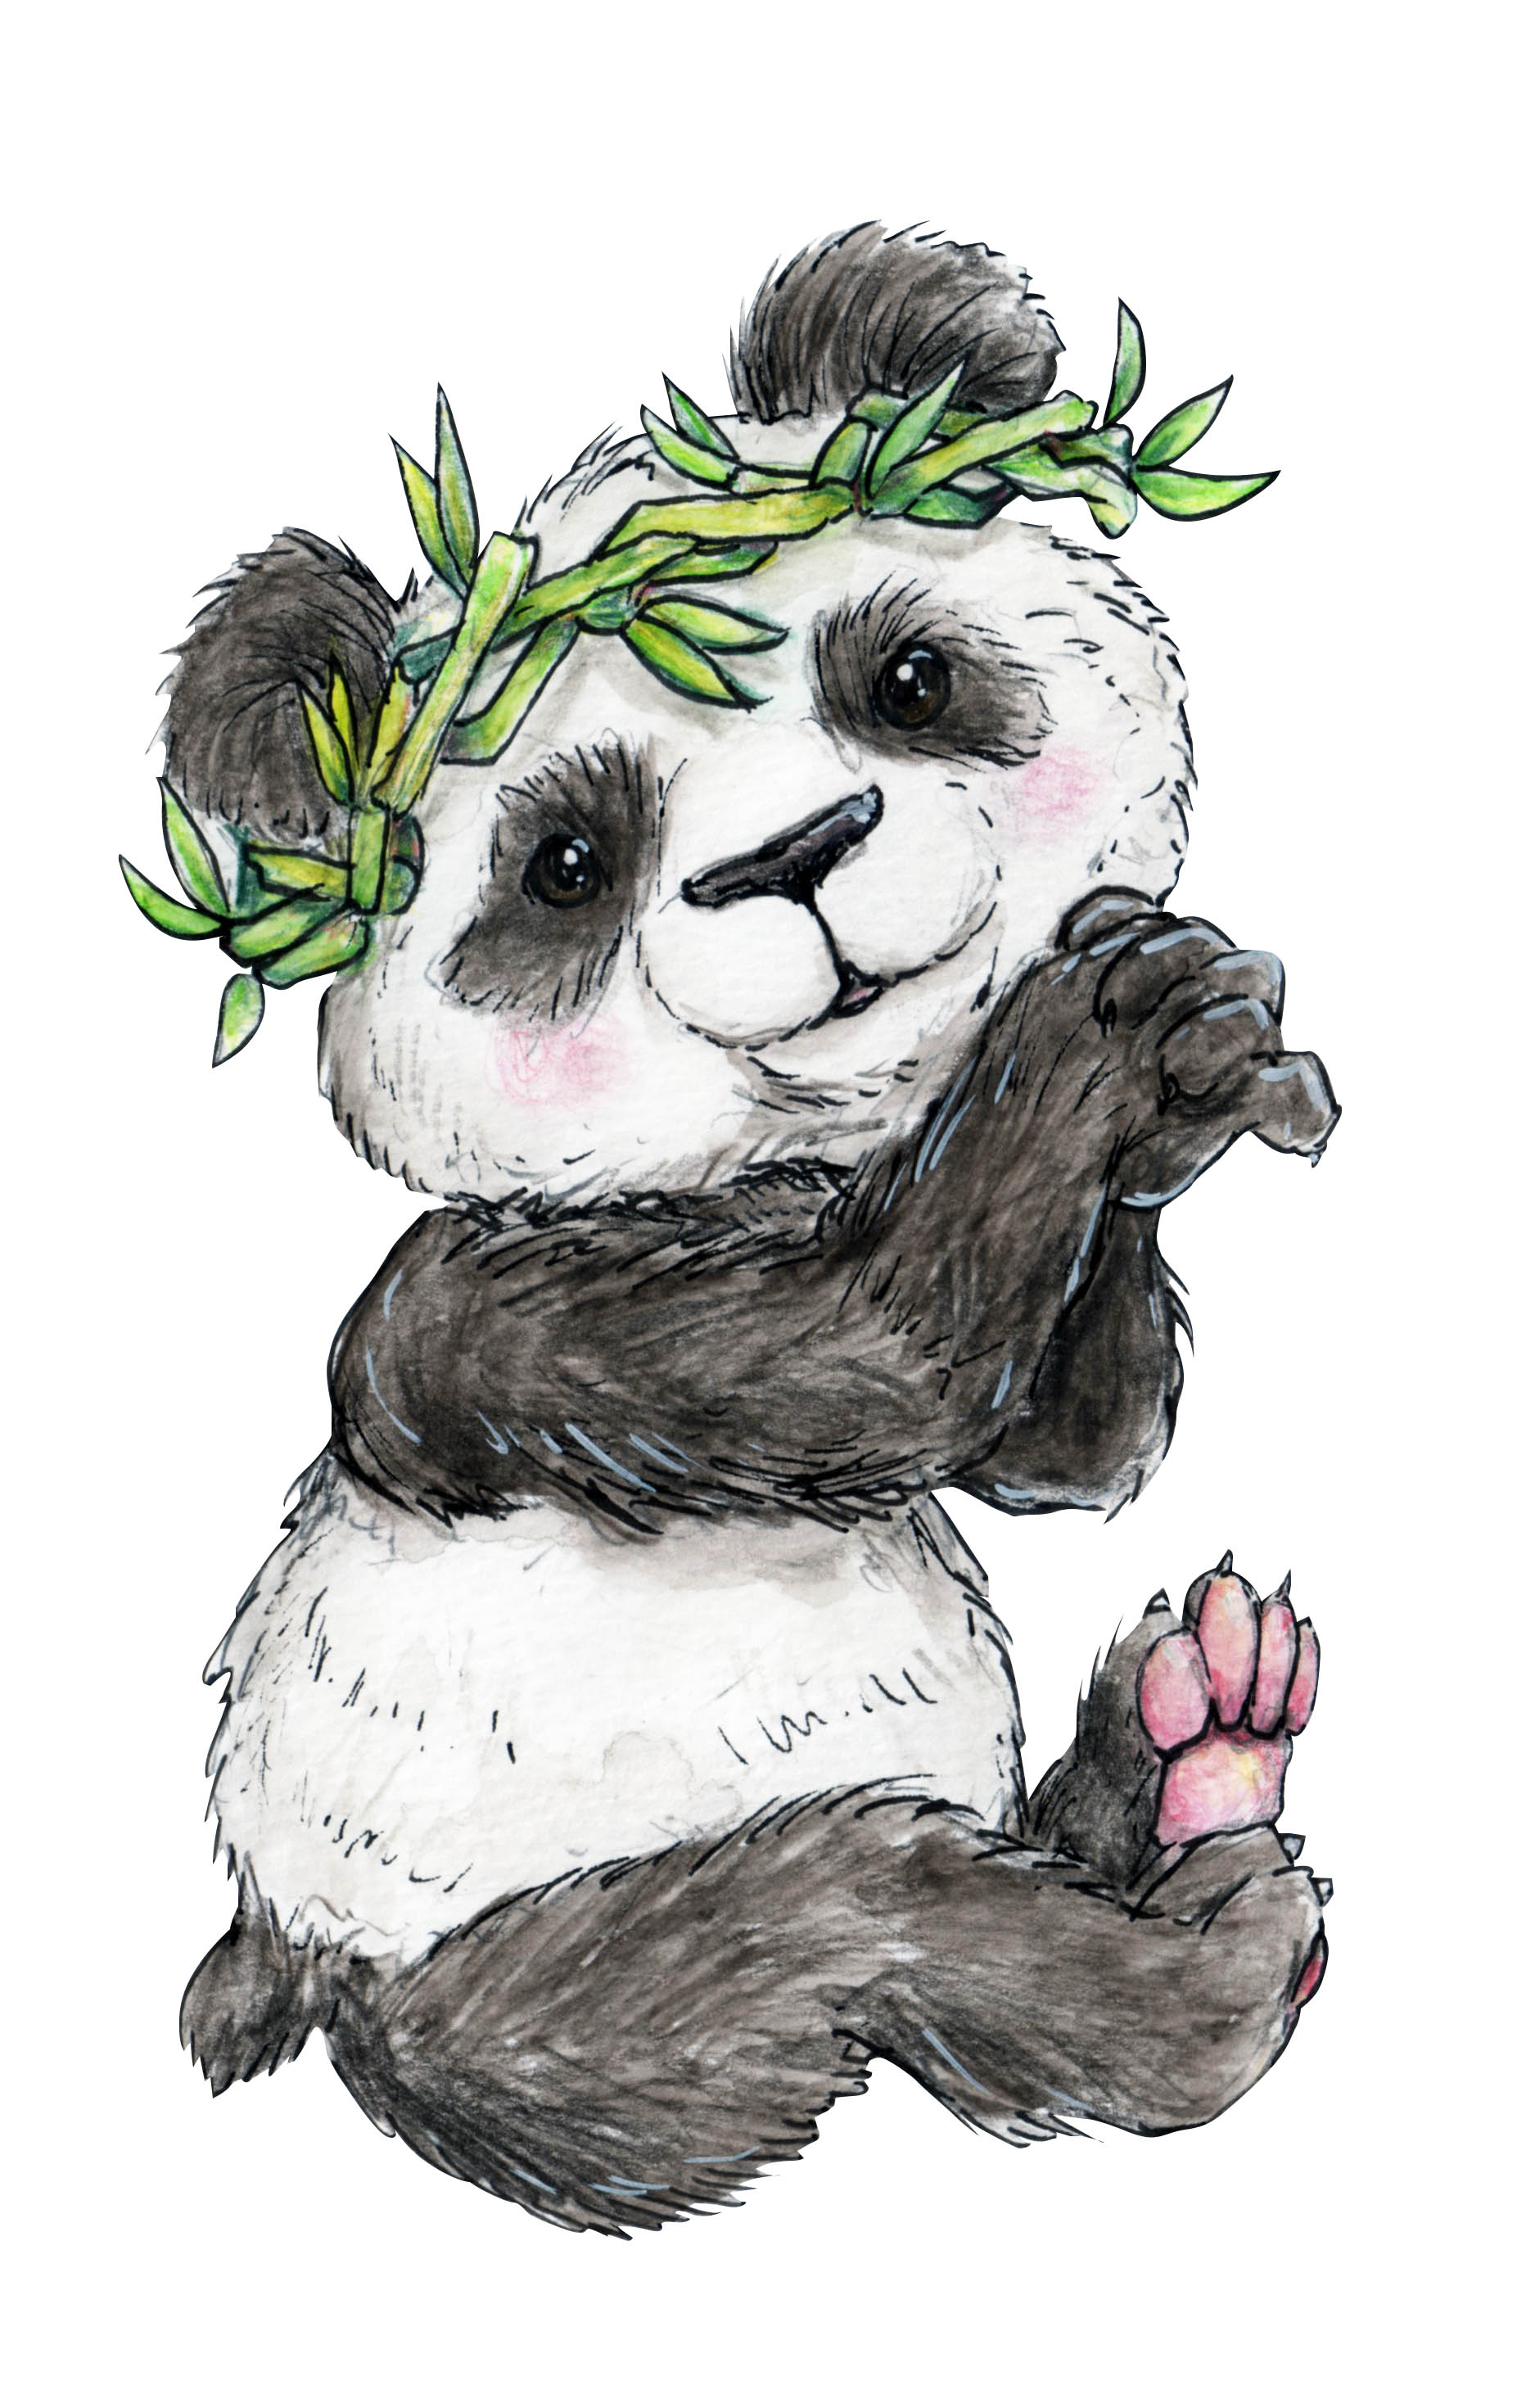 PandaWithWreathShare